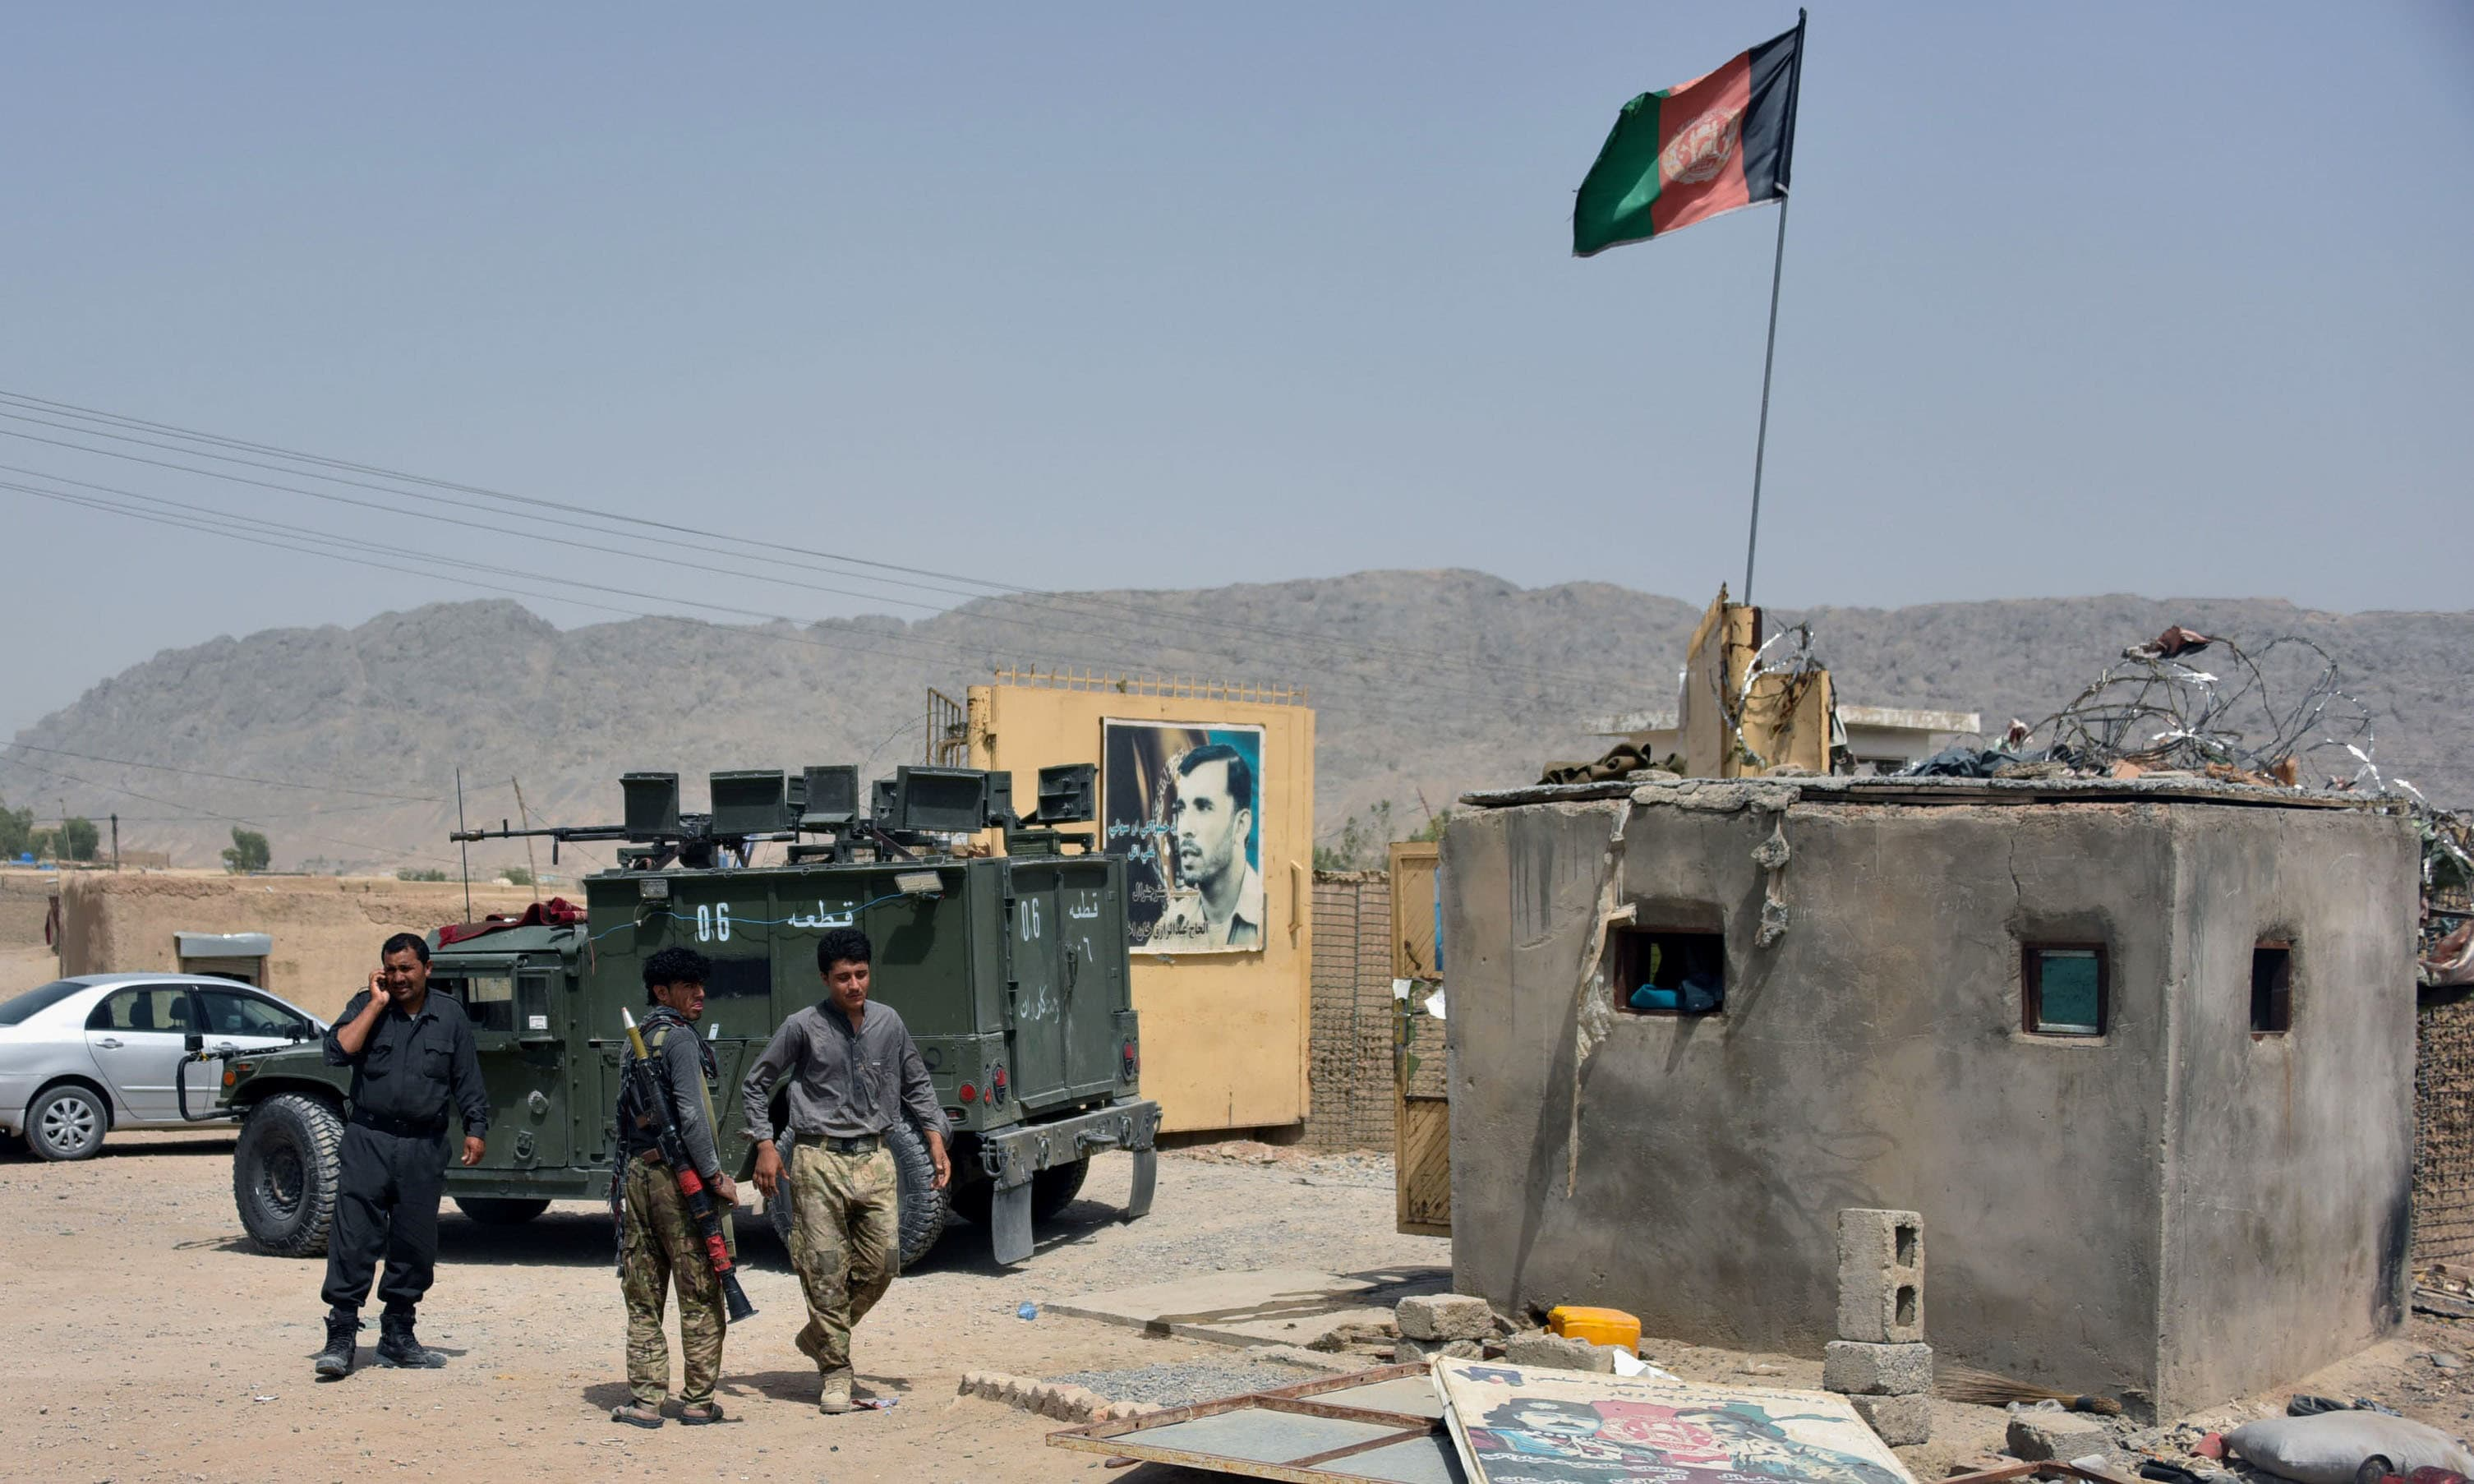 In this file photo, Afghan security forces inspect the site of a car bomb attack in Kandahar province, Afghanistan. — Reuters